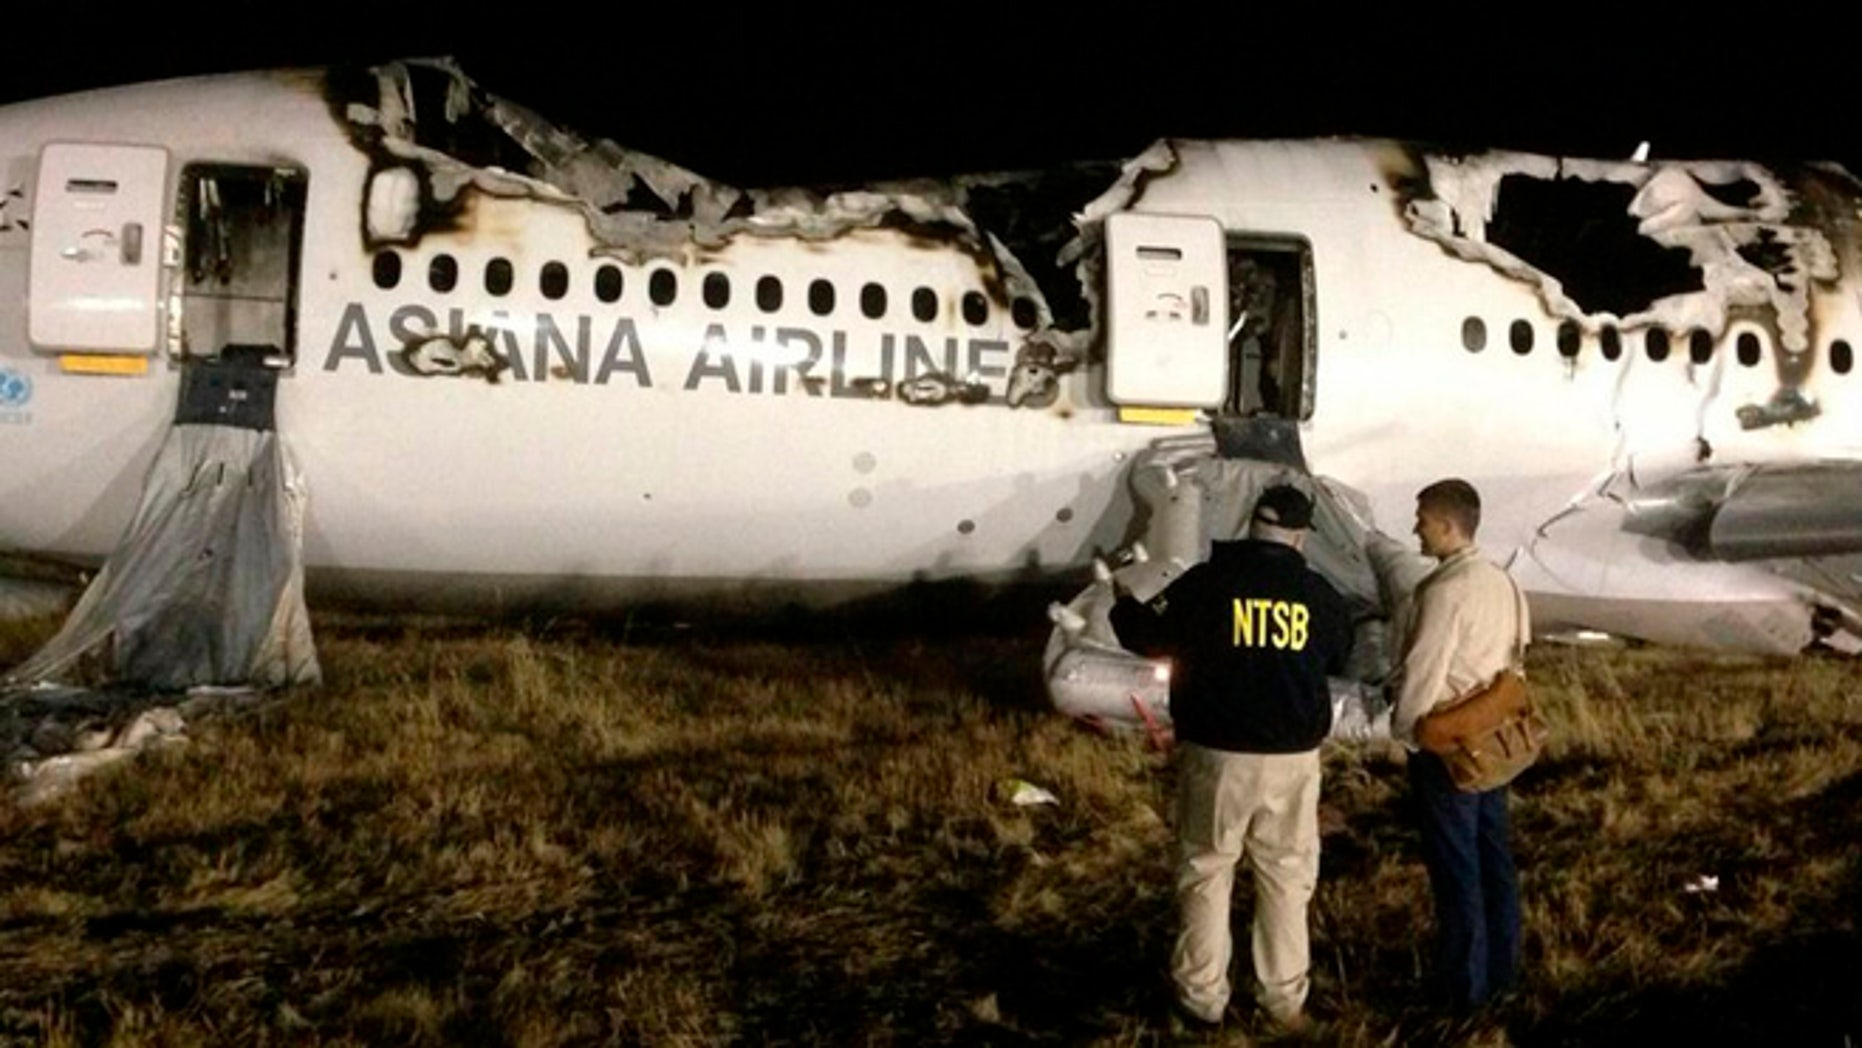 National Transportation Safety Board (NTSB) investigators conduct first site assessment of the wreckage of Asiana Airlines Flight 214, at San Francisco International Airport in San Francisco, California in this July 6, 2013 handout photo.